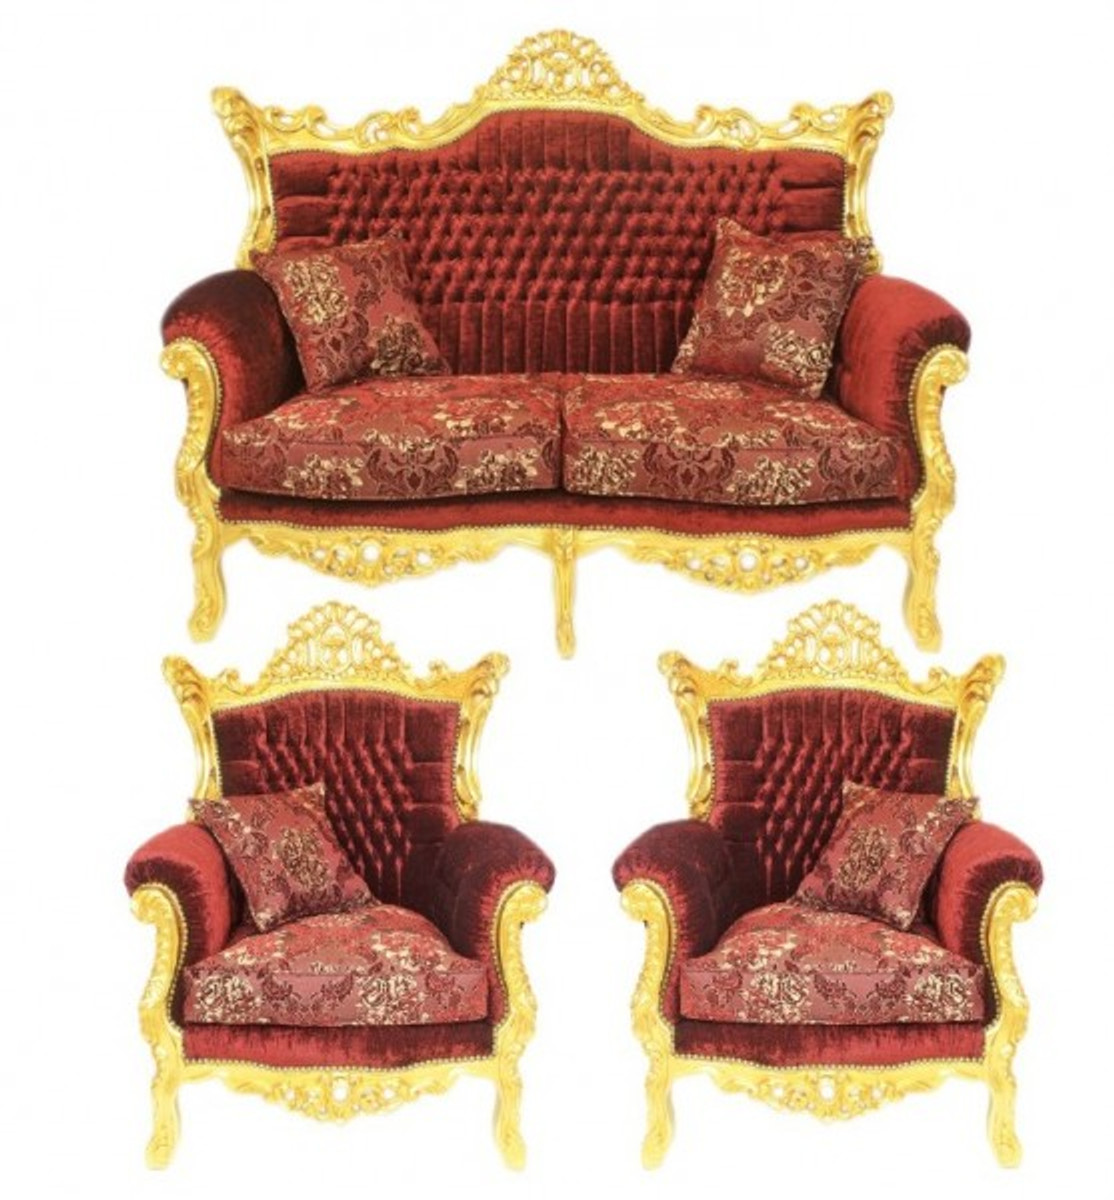 Casa padrino baroque living set master bordeaux pattern for Sofa barock